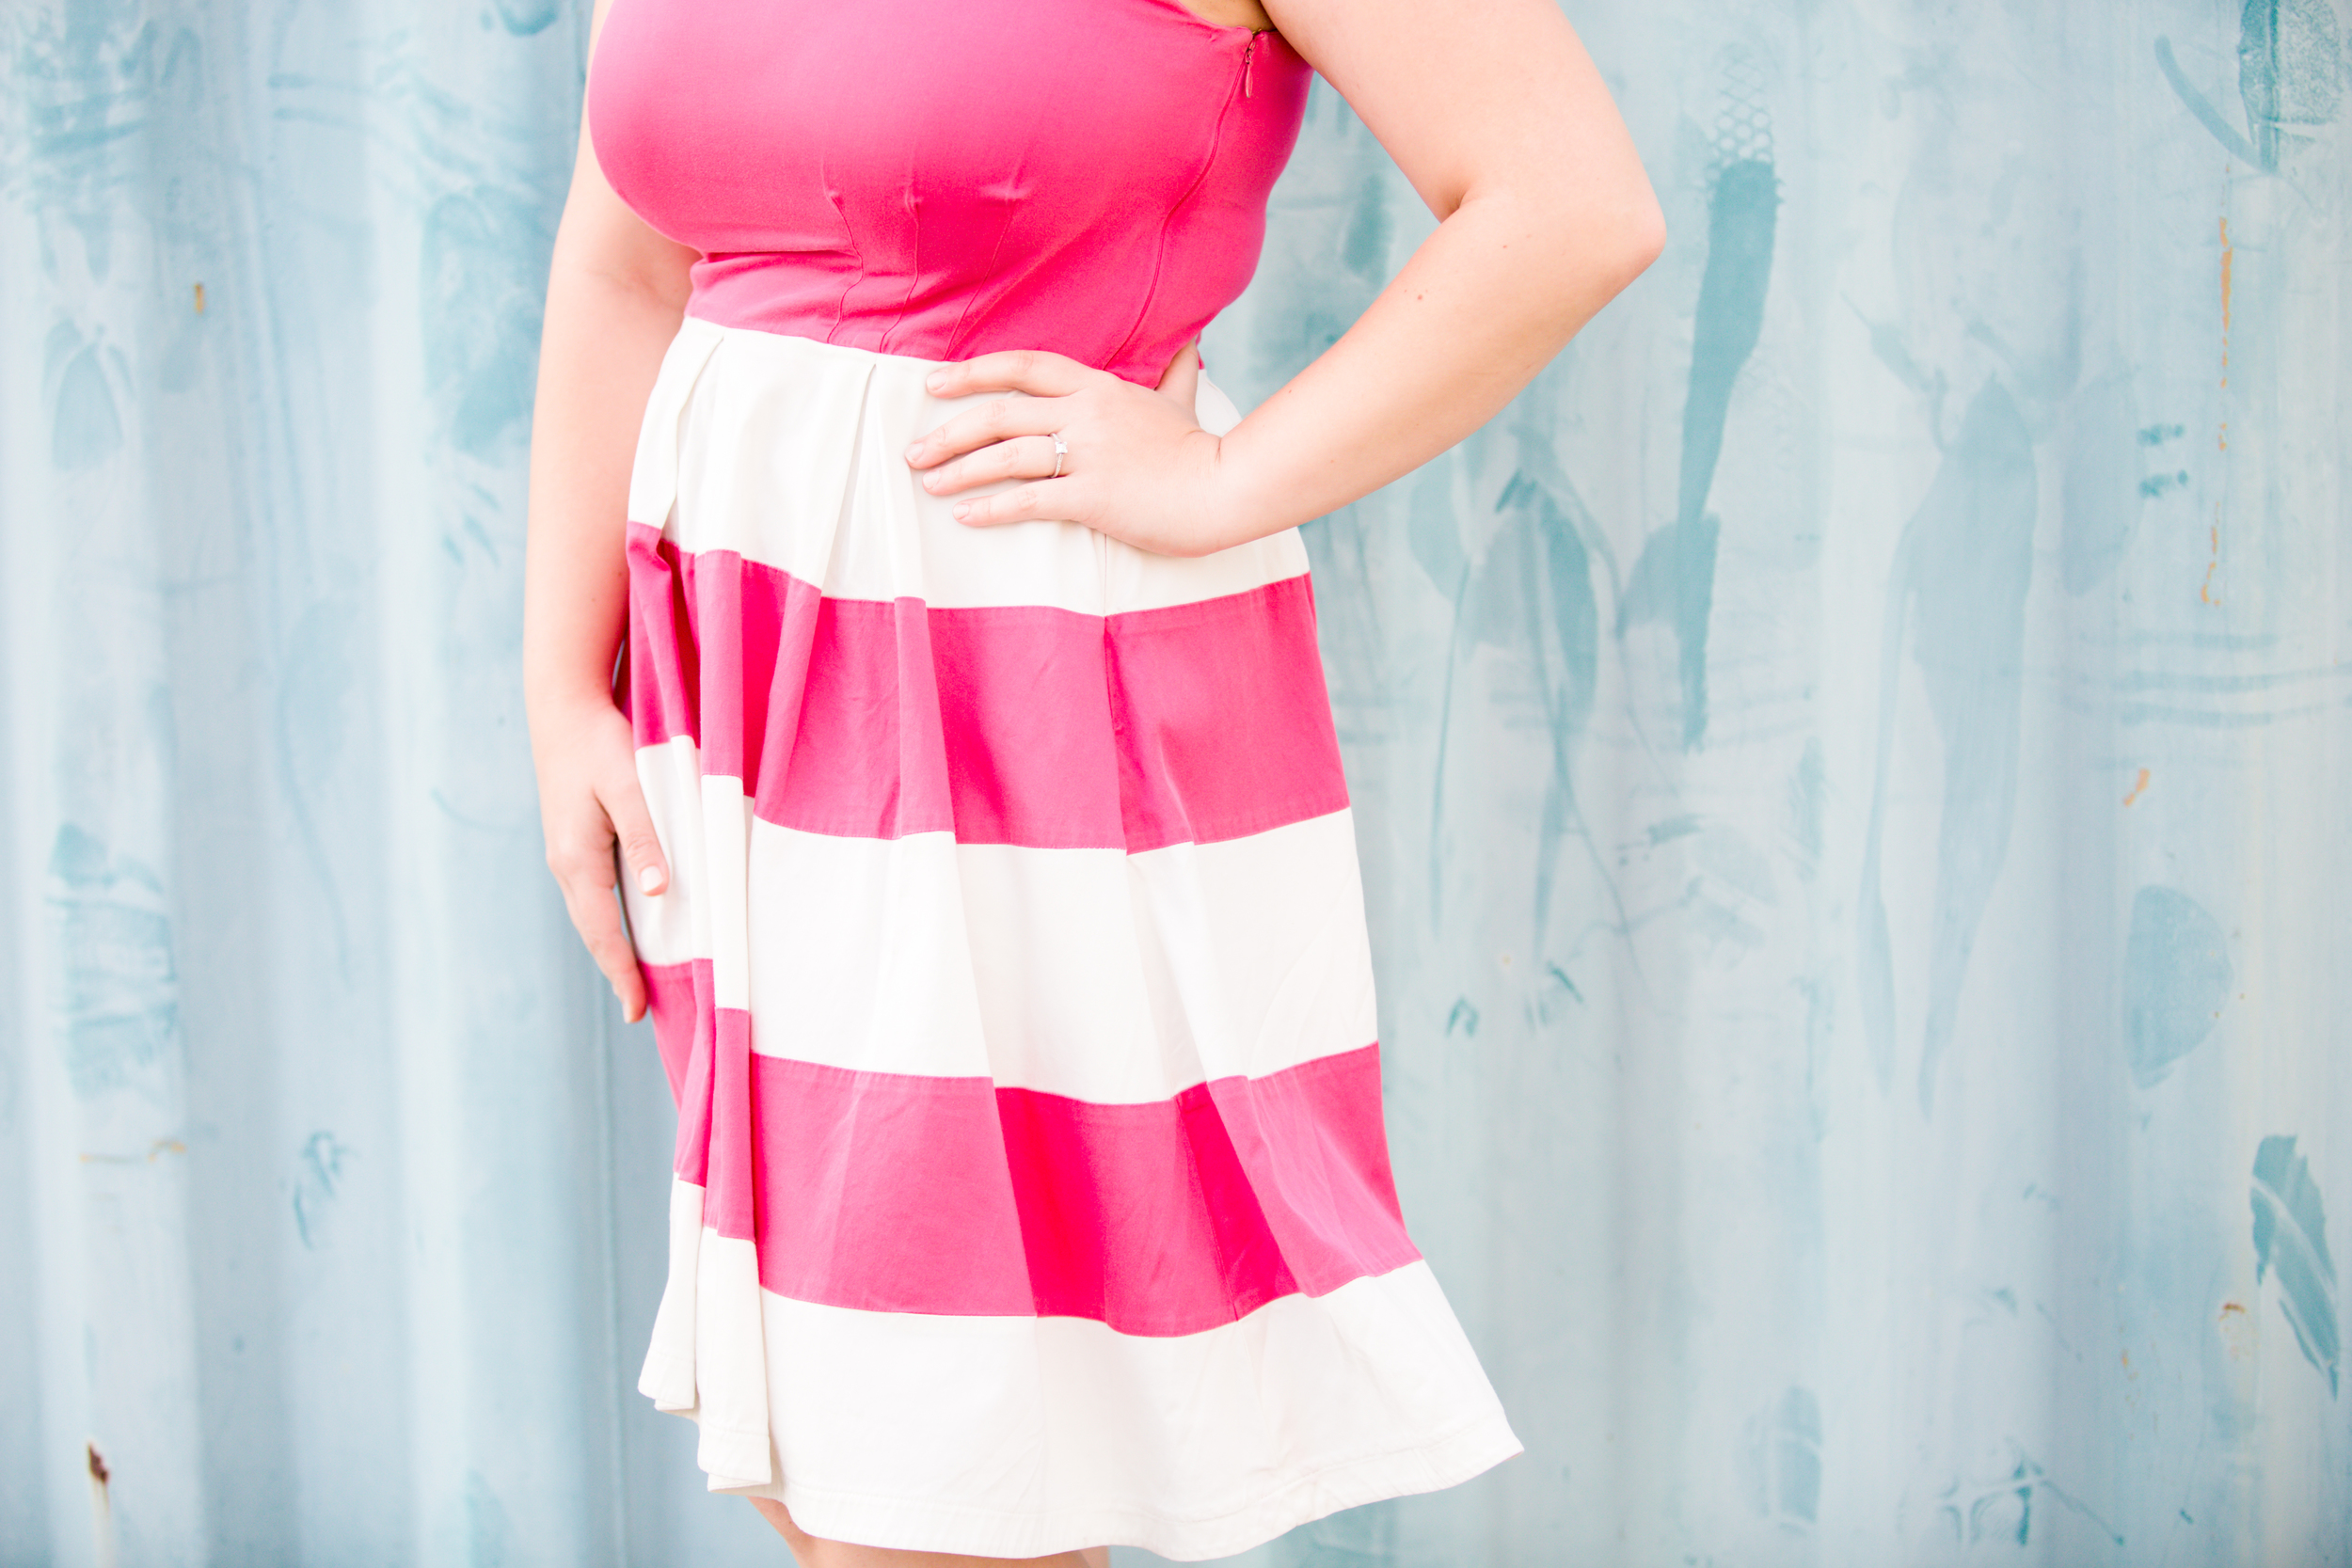 Lacey_Michelle_Photography_LR-1545.jpg